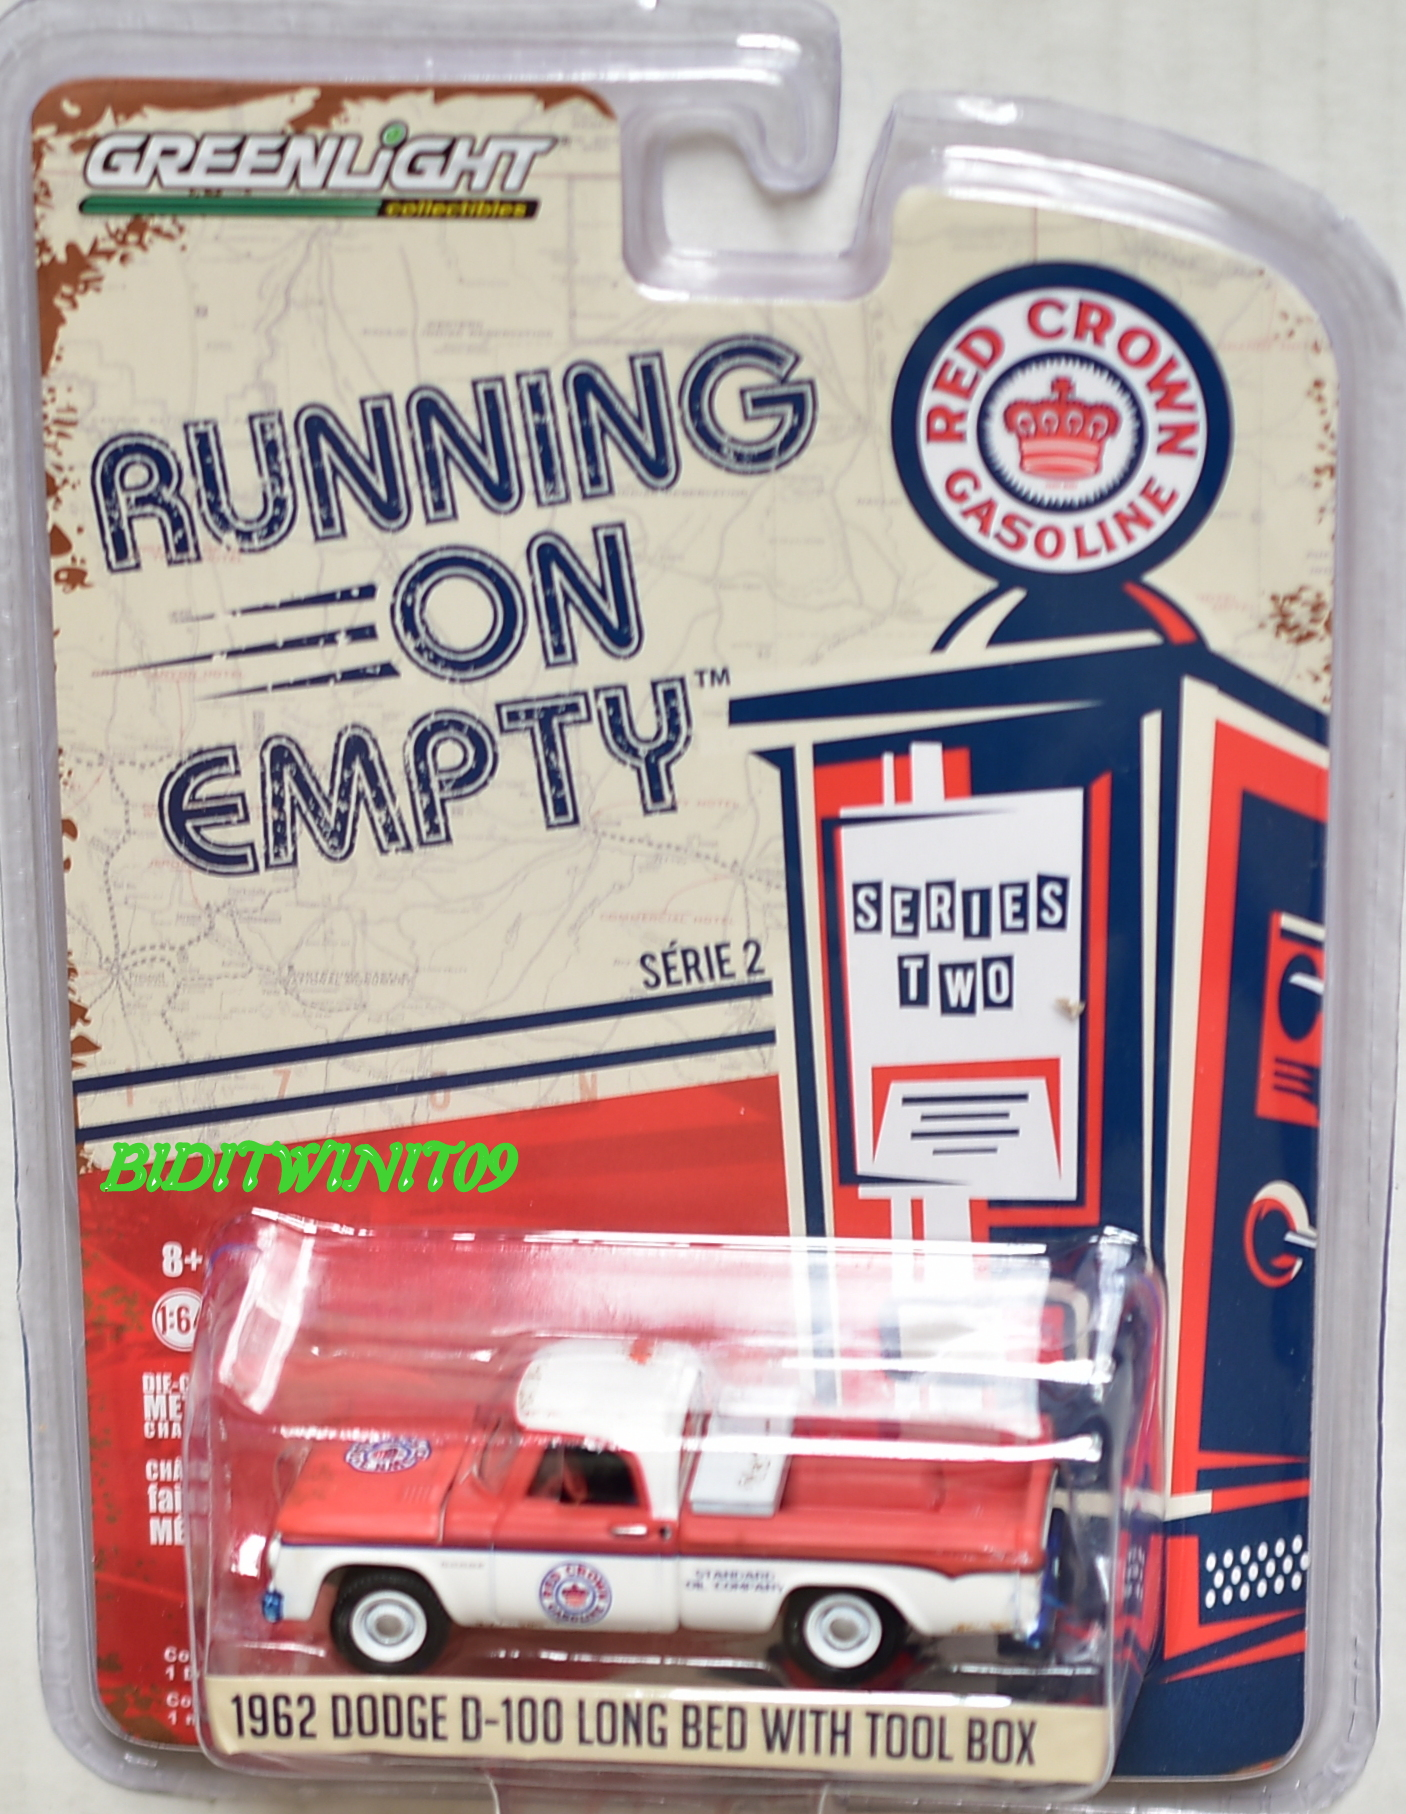 GREENLIGHT RUNNING ON EMPTY 1962 DODGE D-100 LONG BED WITH TOOL BOX SERIES 2